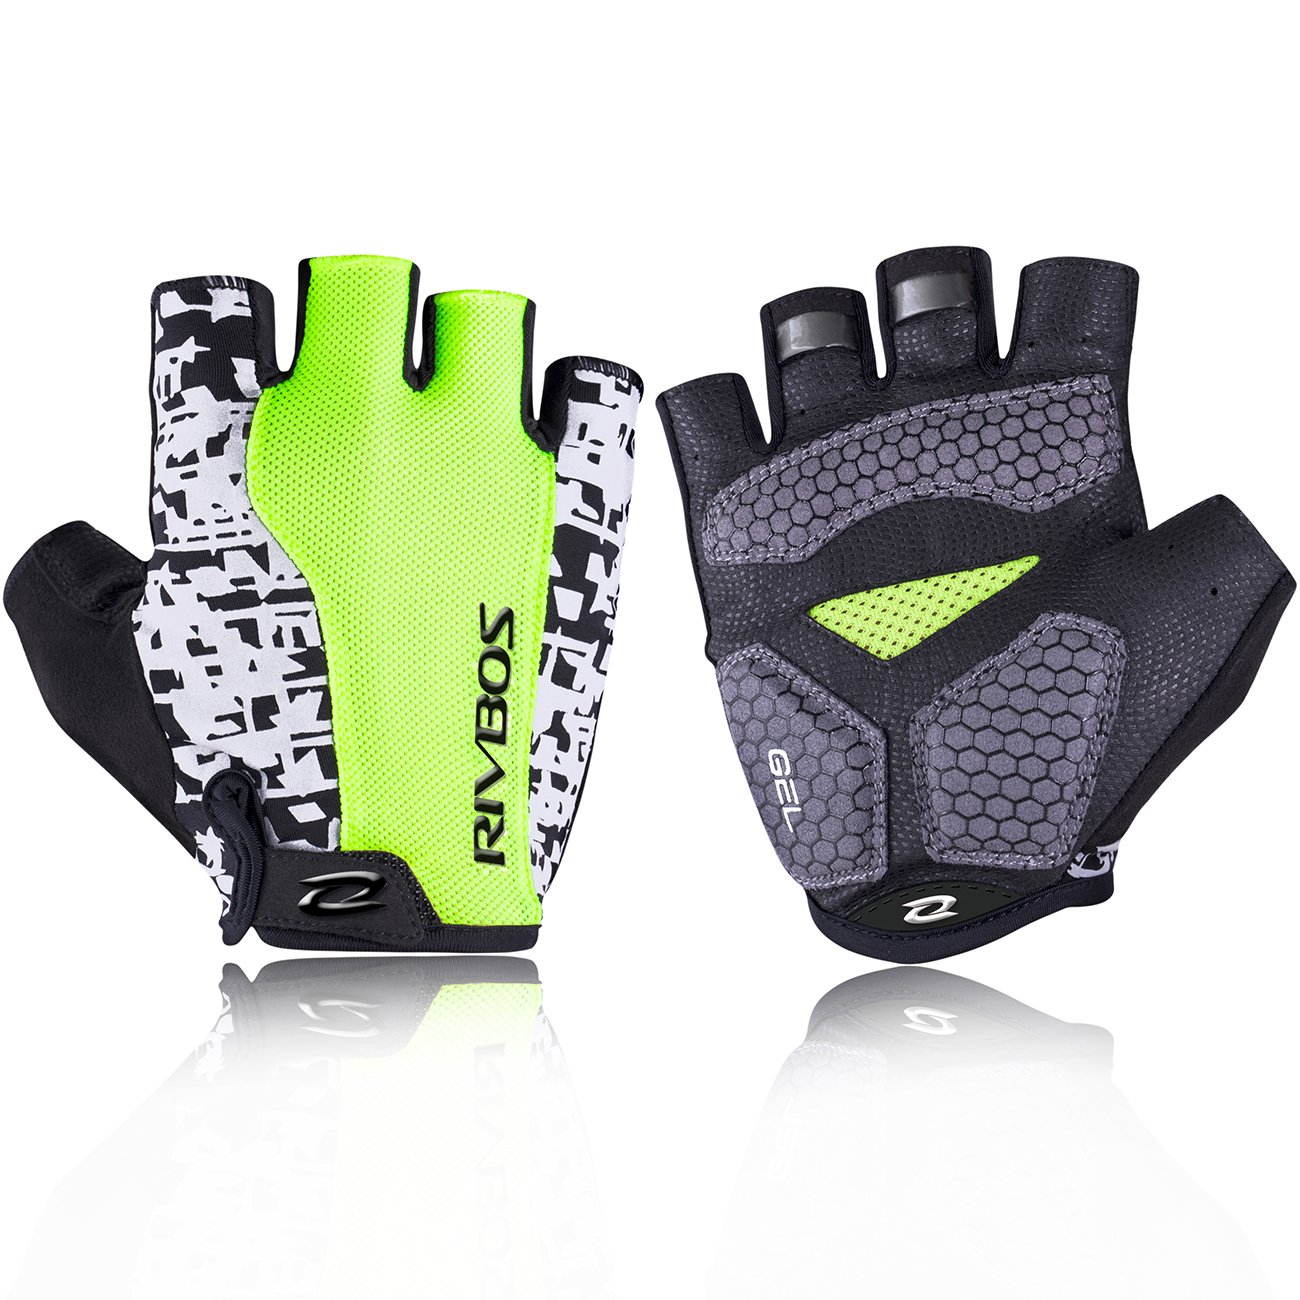 RIVBOS Bike Gloves Cycling Gloves Fingerless for Men Women with Foam Padding Breathable Mesh Fashion Design CHG001